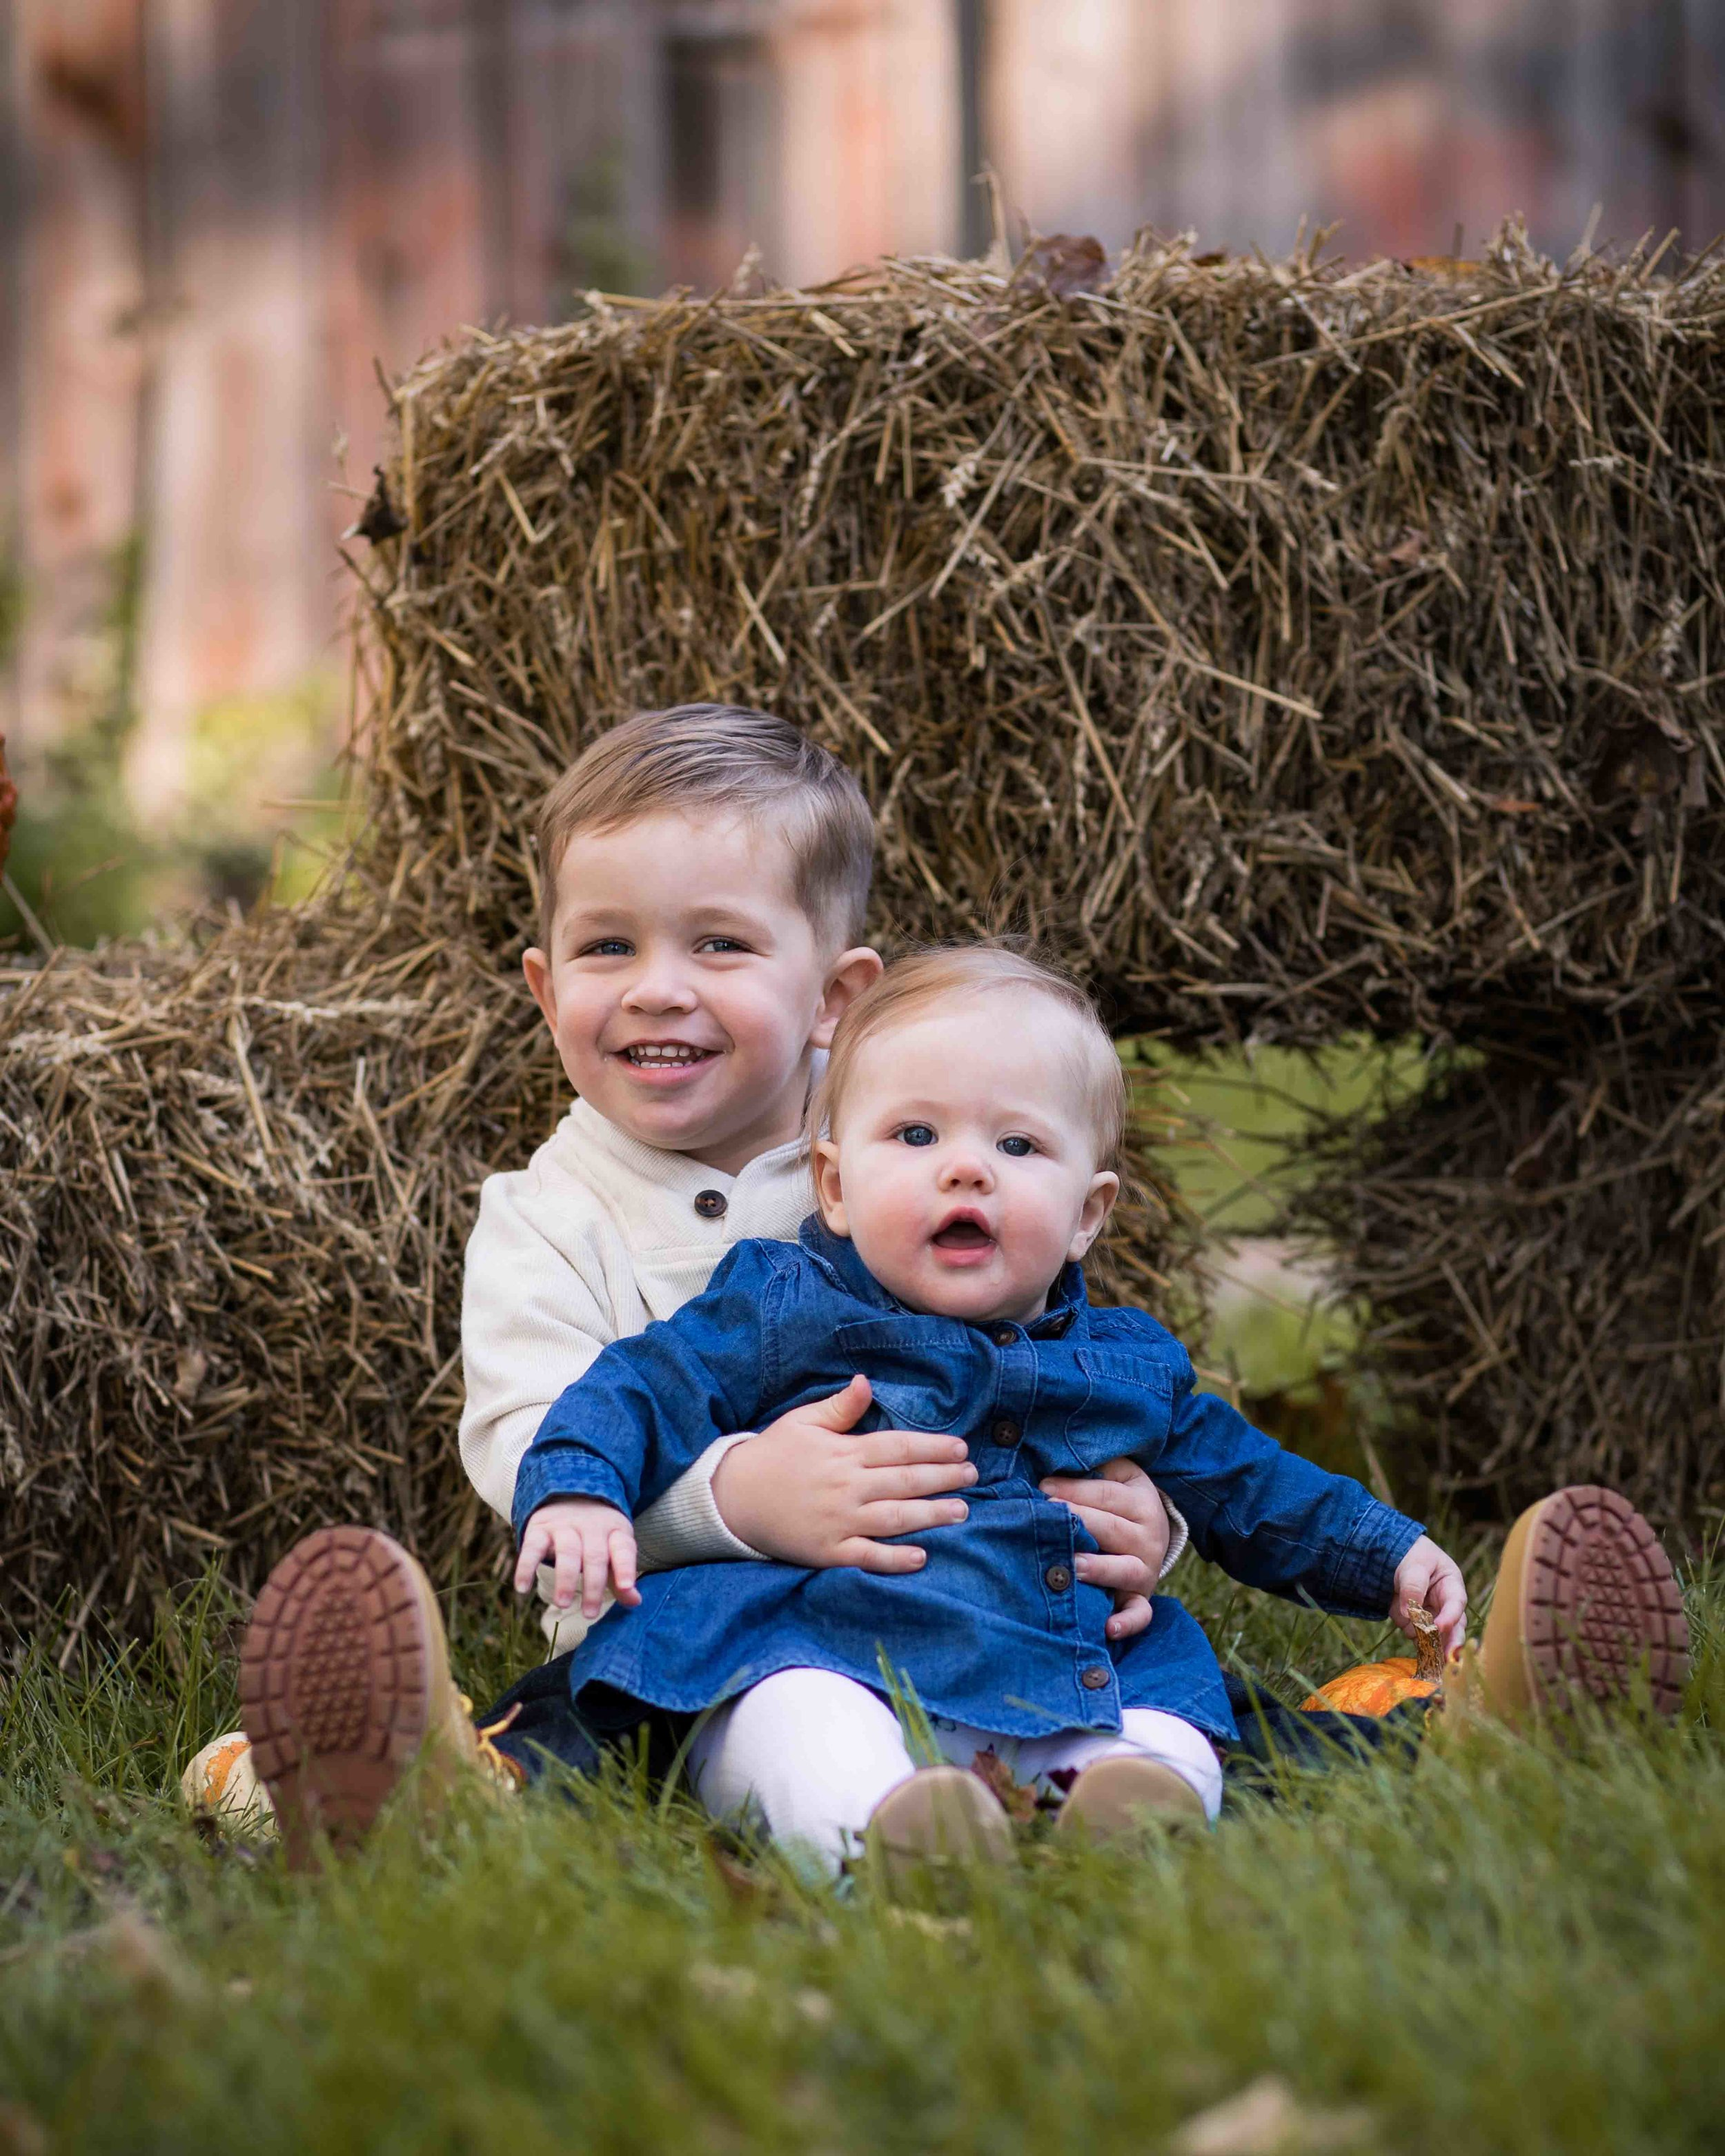 big brother holding his little sister in front of a hay bale at the Shiloh Farm barn in Richland, MI